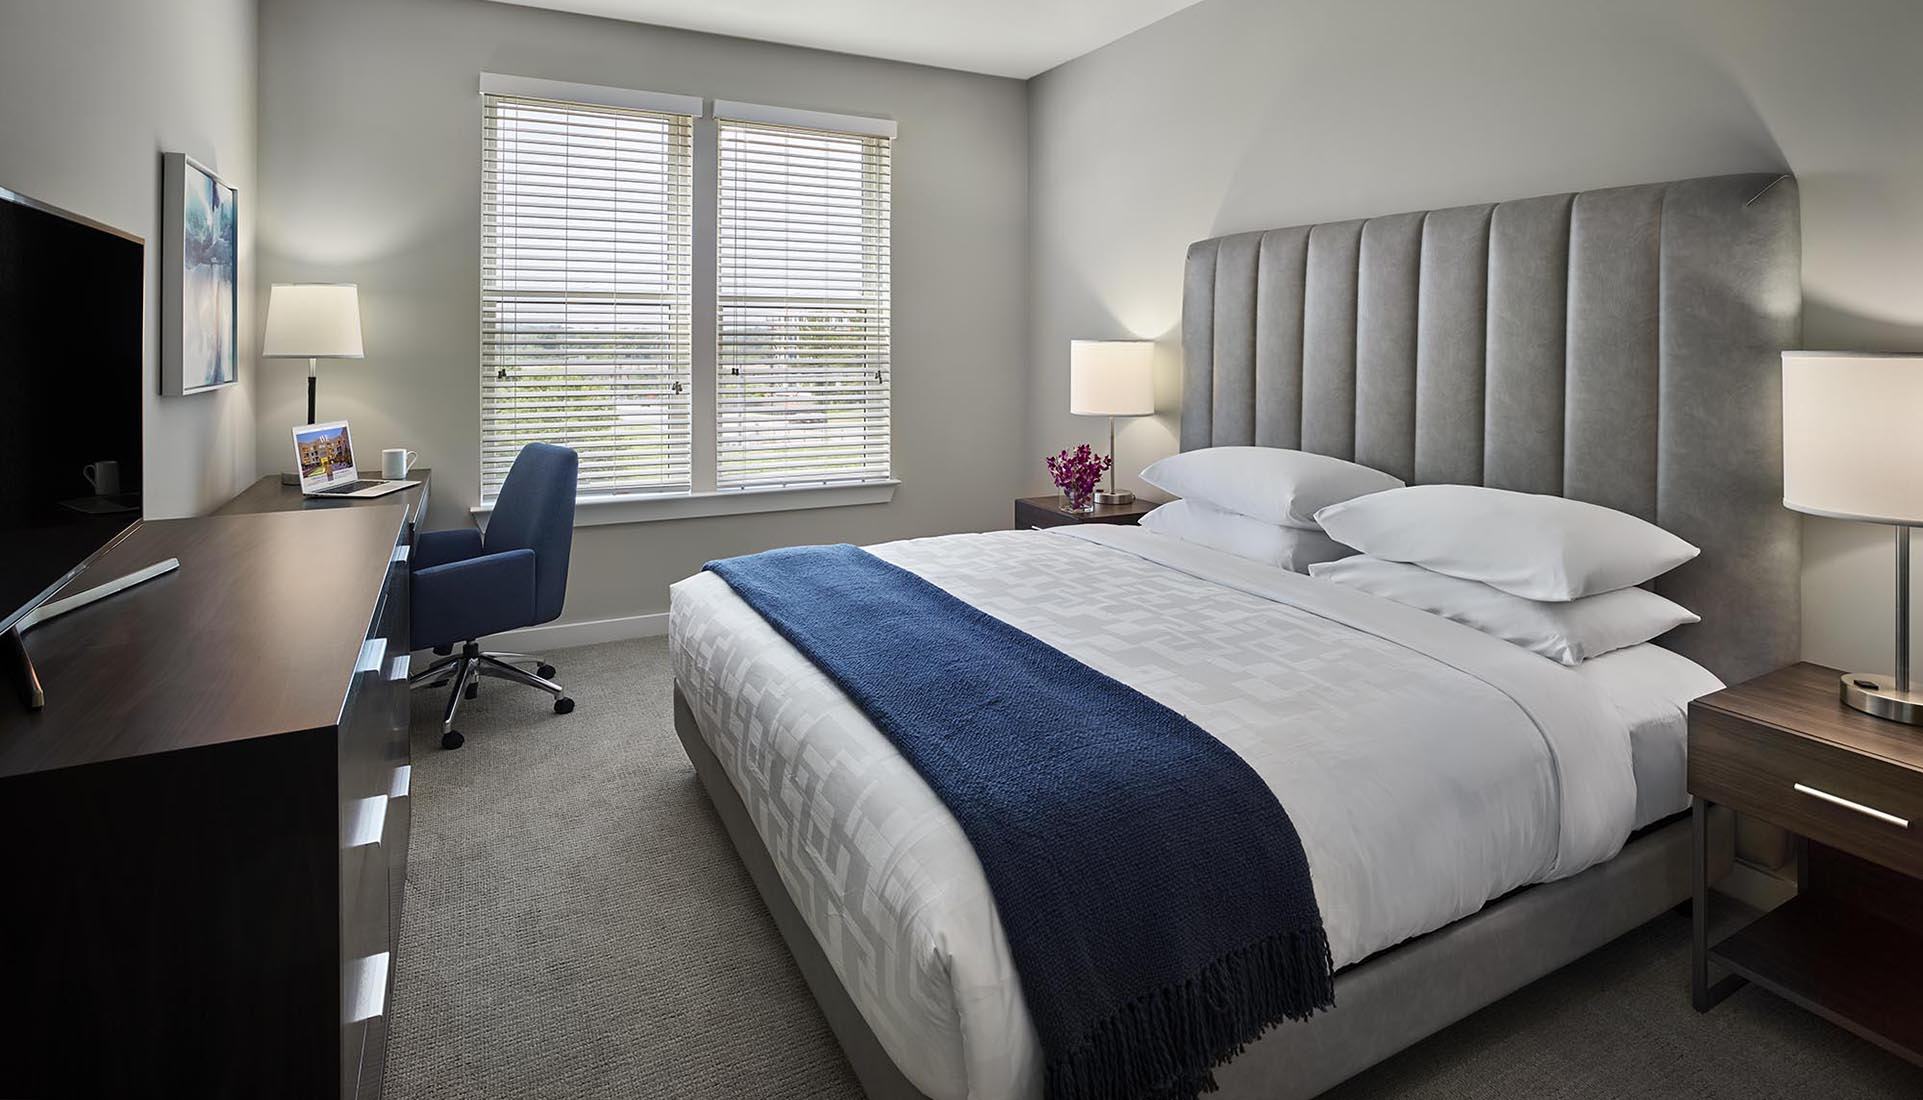 AVE King of Prussia furnished bedroom